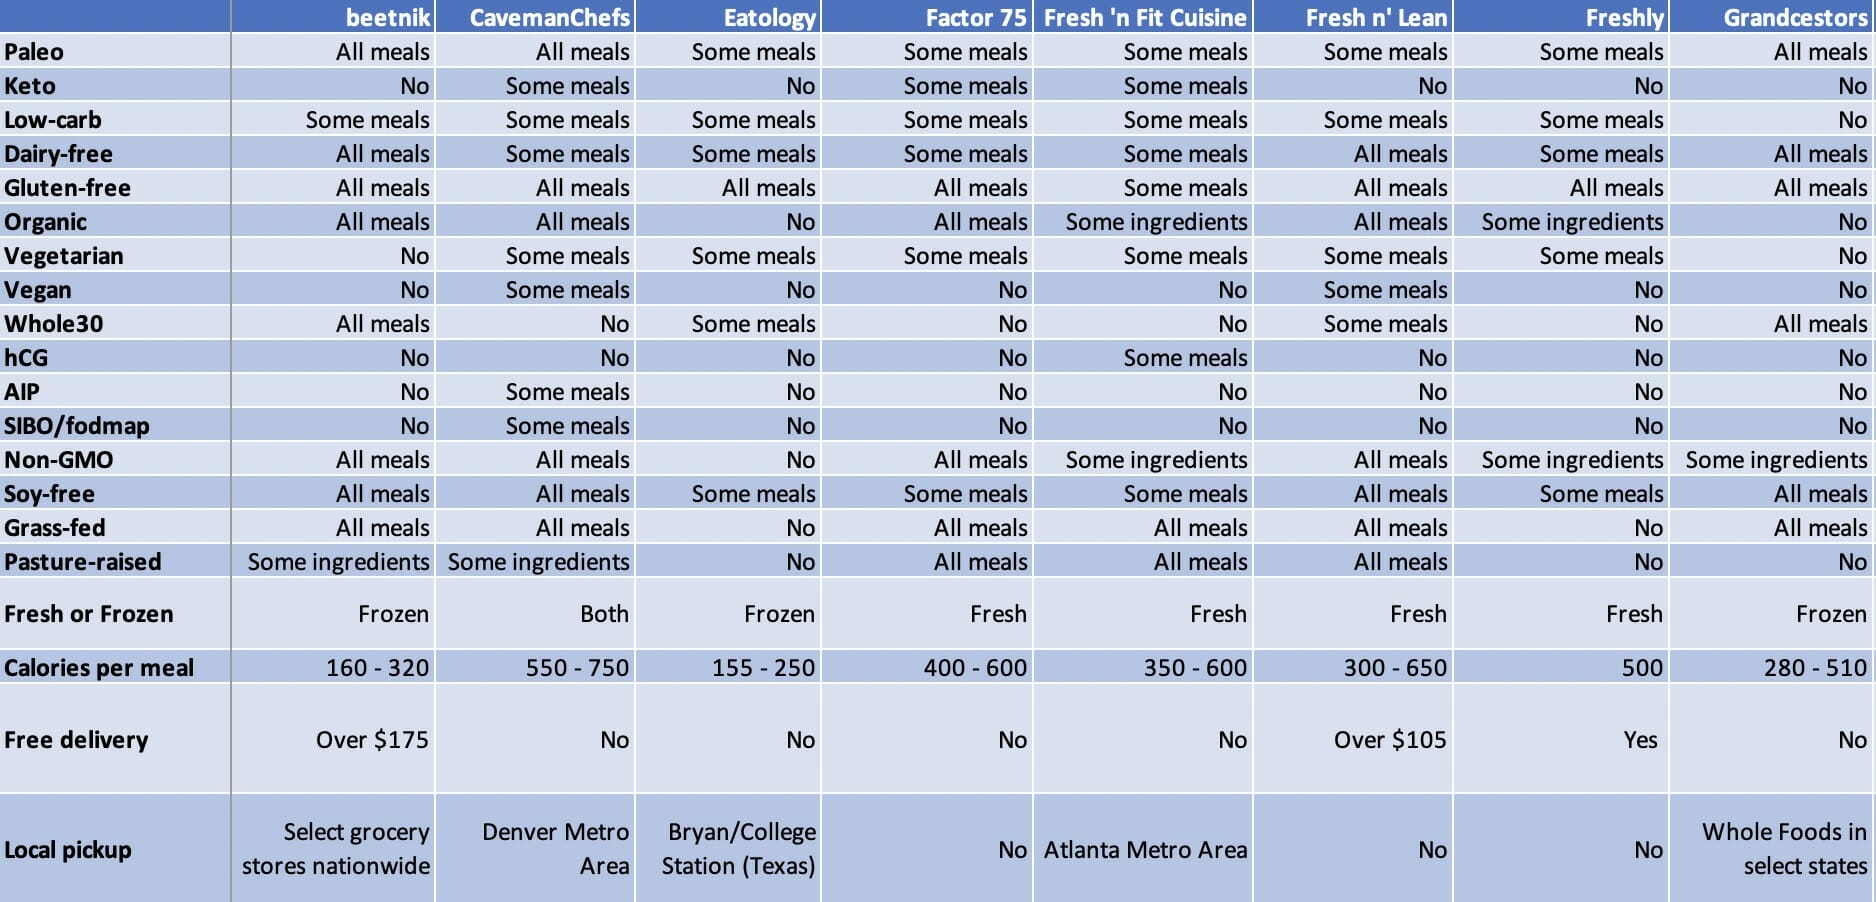 Meal Delivery Services - Comparison Table